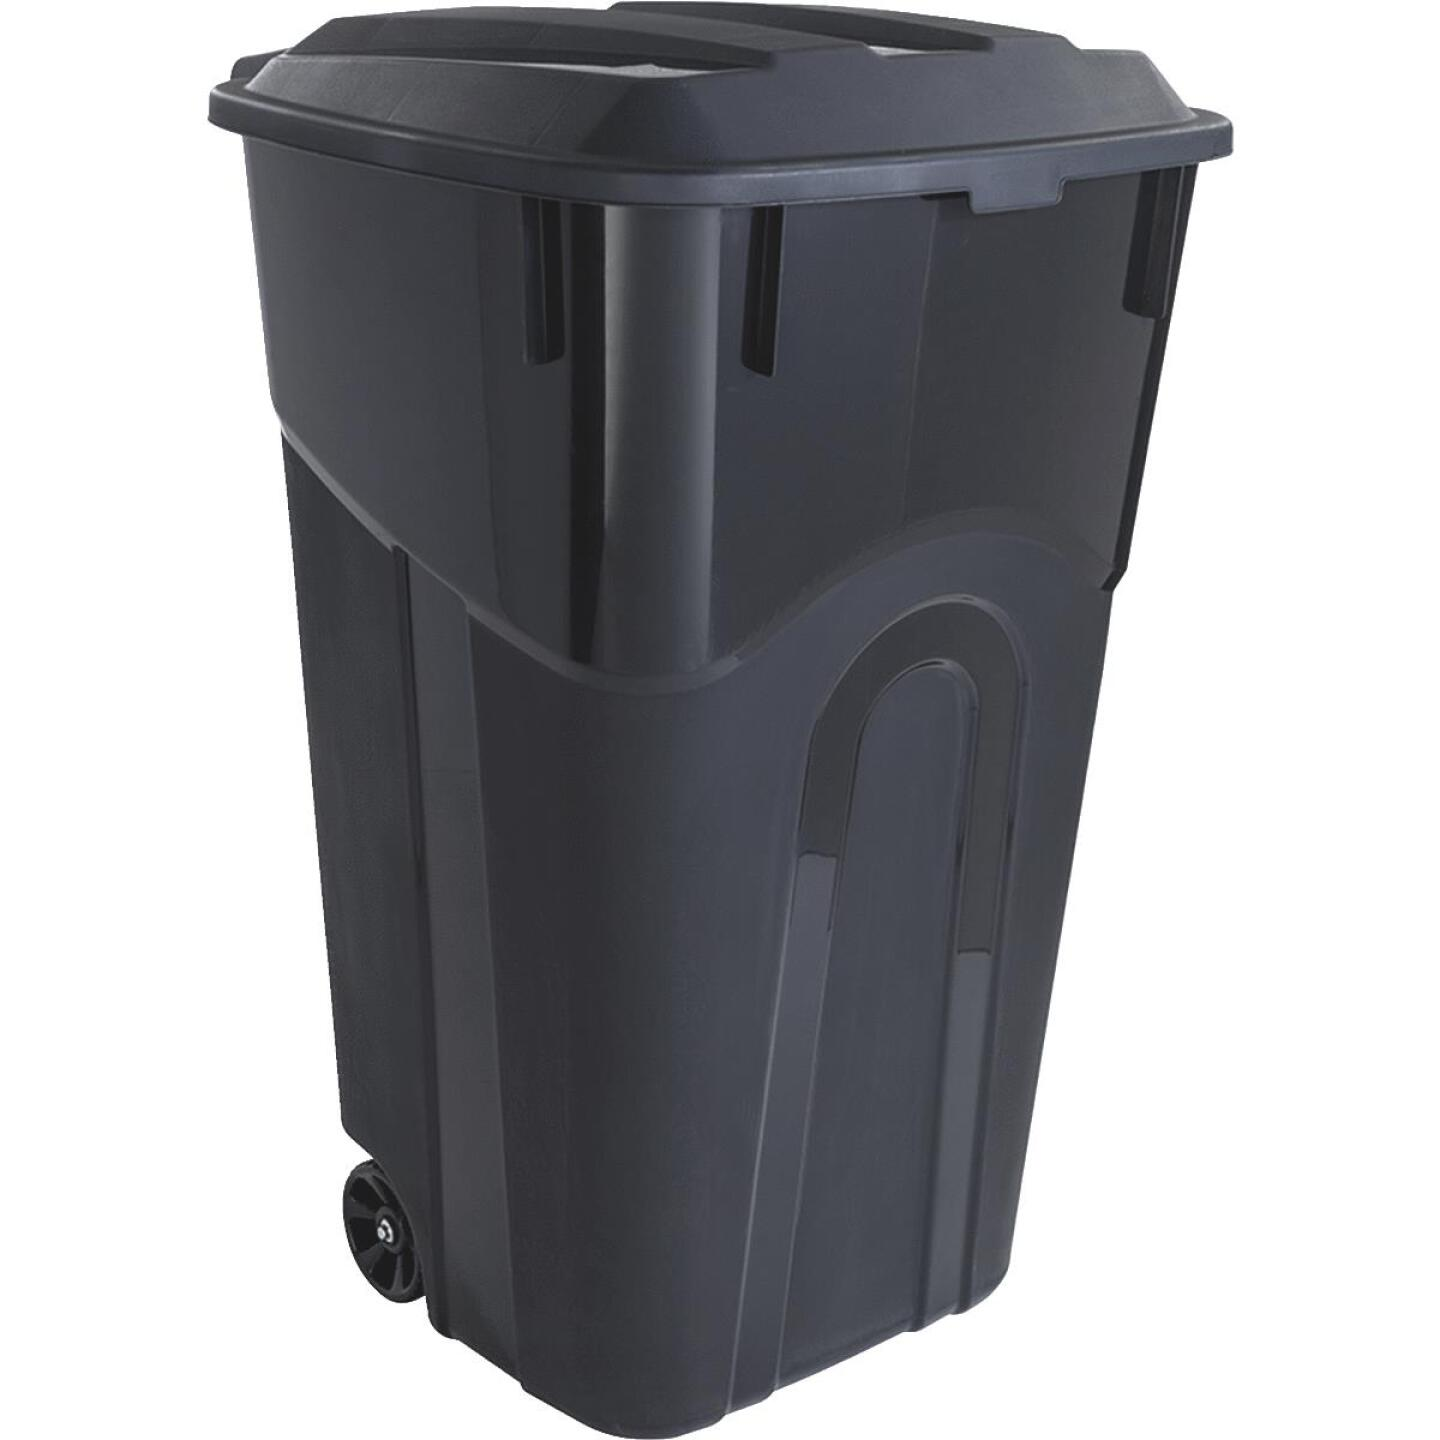 United Solutions Rough and Rugged 32 Gal. Outdoor Trash Can with Attached Lid Image 1